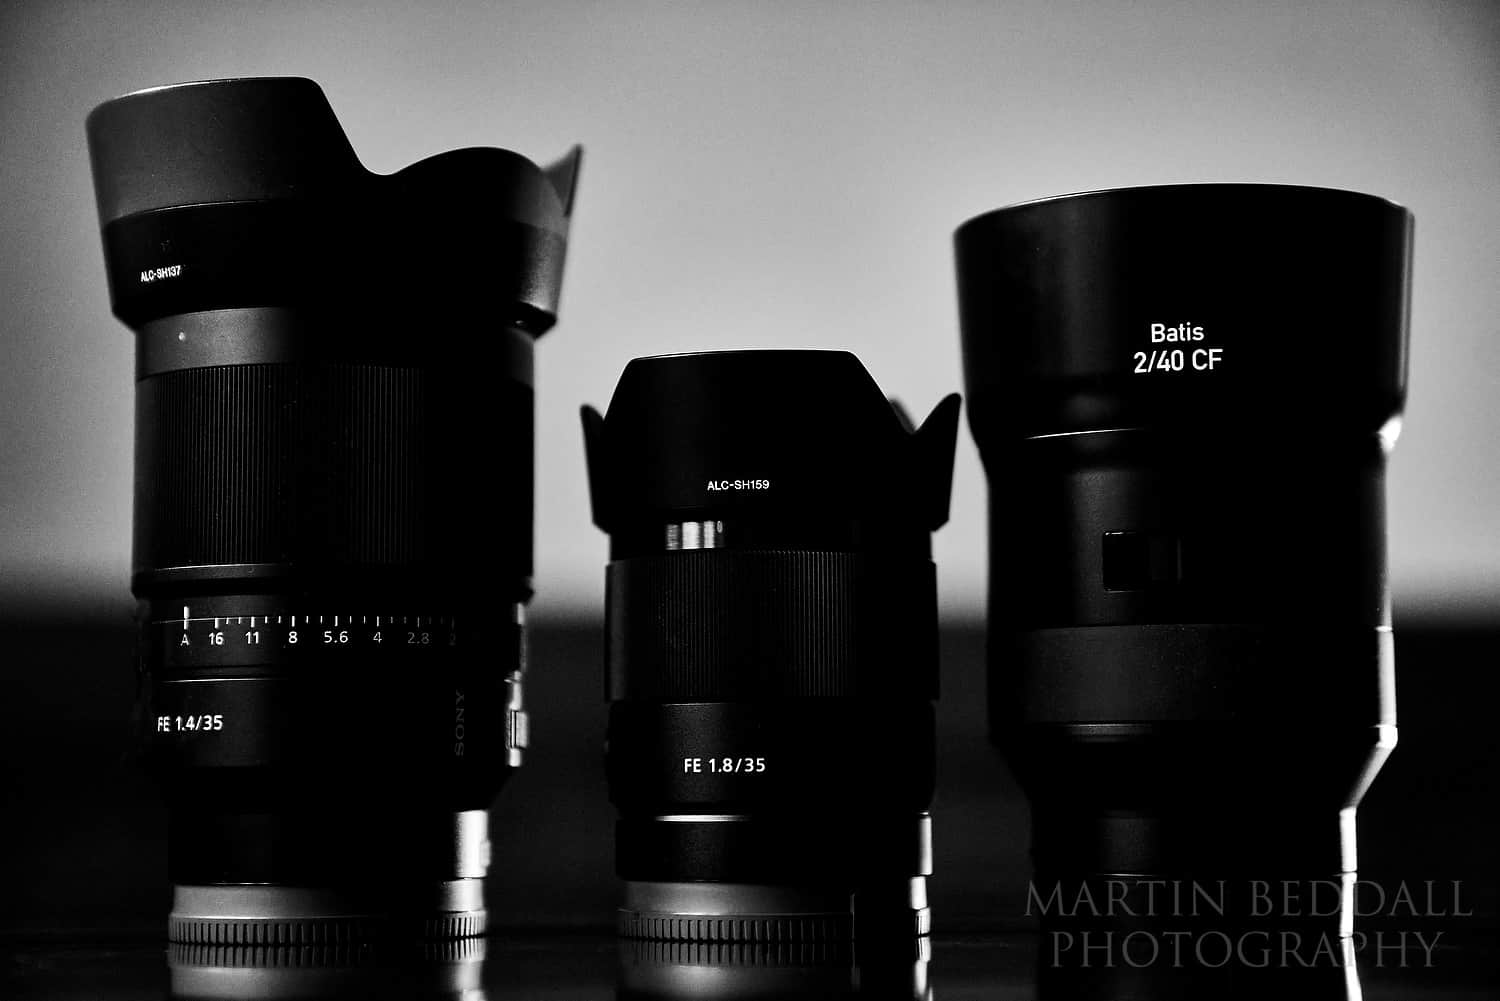 Sony 35mm f1.4, Sony 35mm f1.8 and Zeiss Batis 40mm